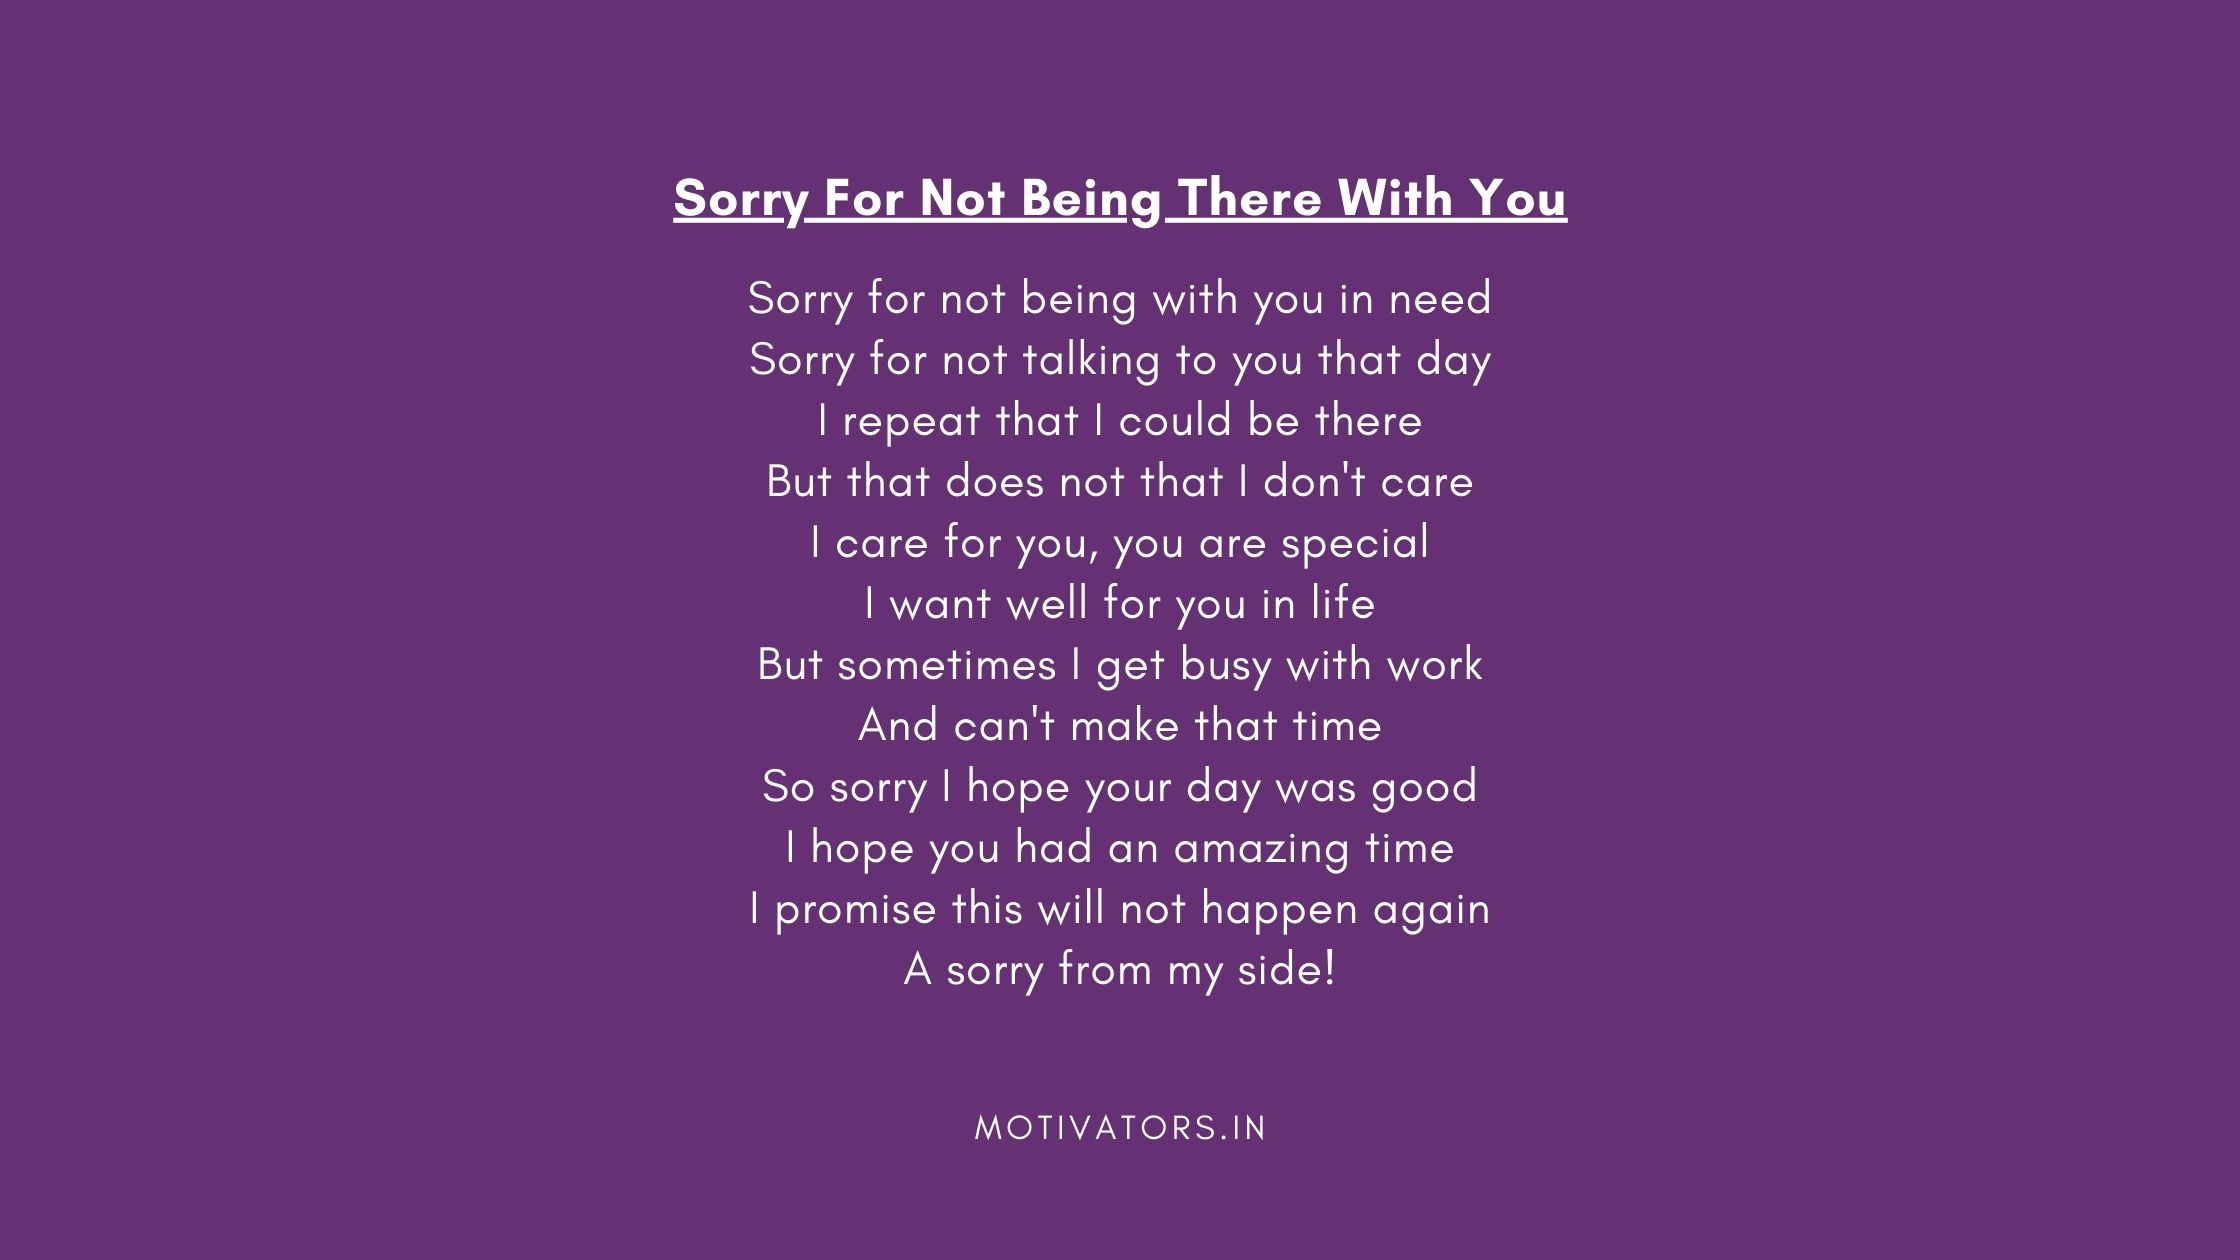 Sorry For Not Being There With You